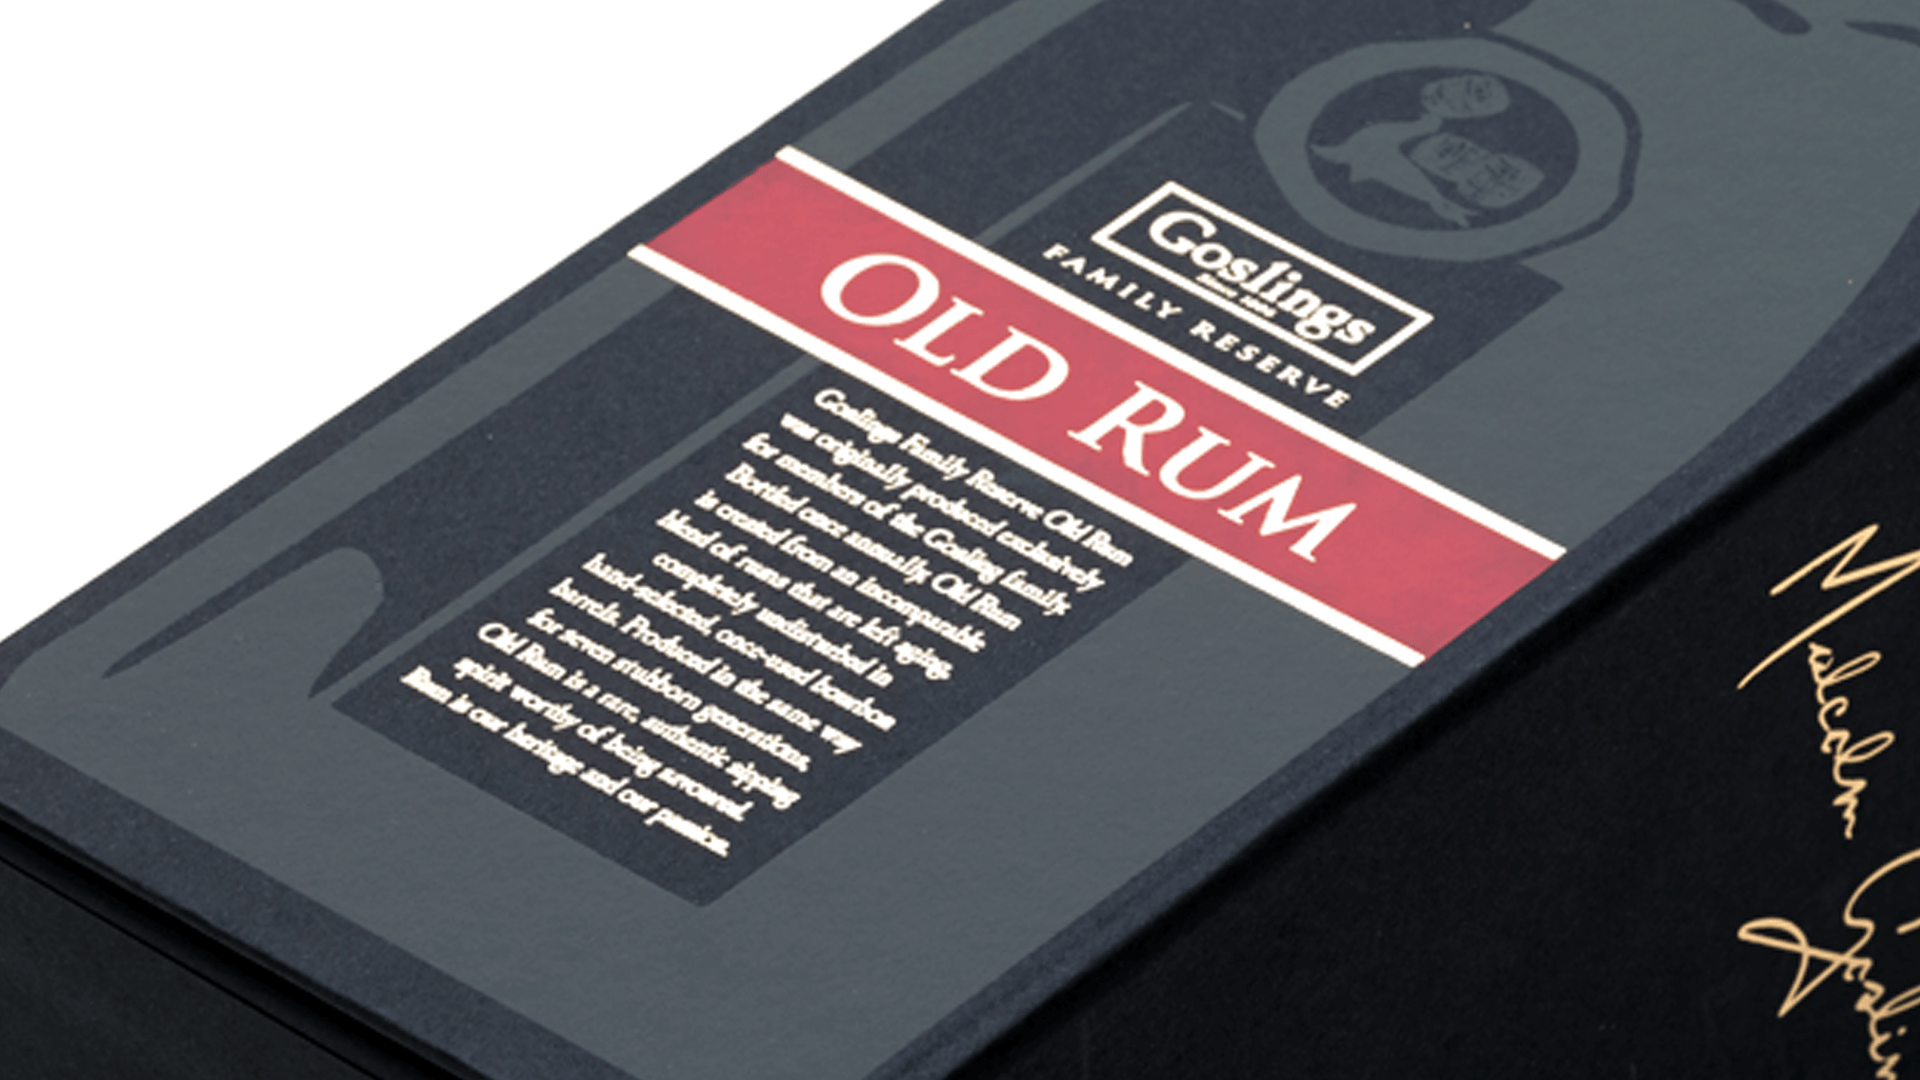 5 Hot Tips for Designing With Foil - Taylor Box Co. and PaperSpecs